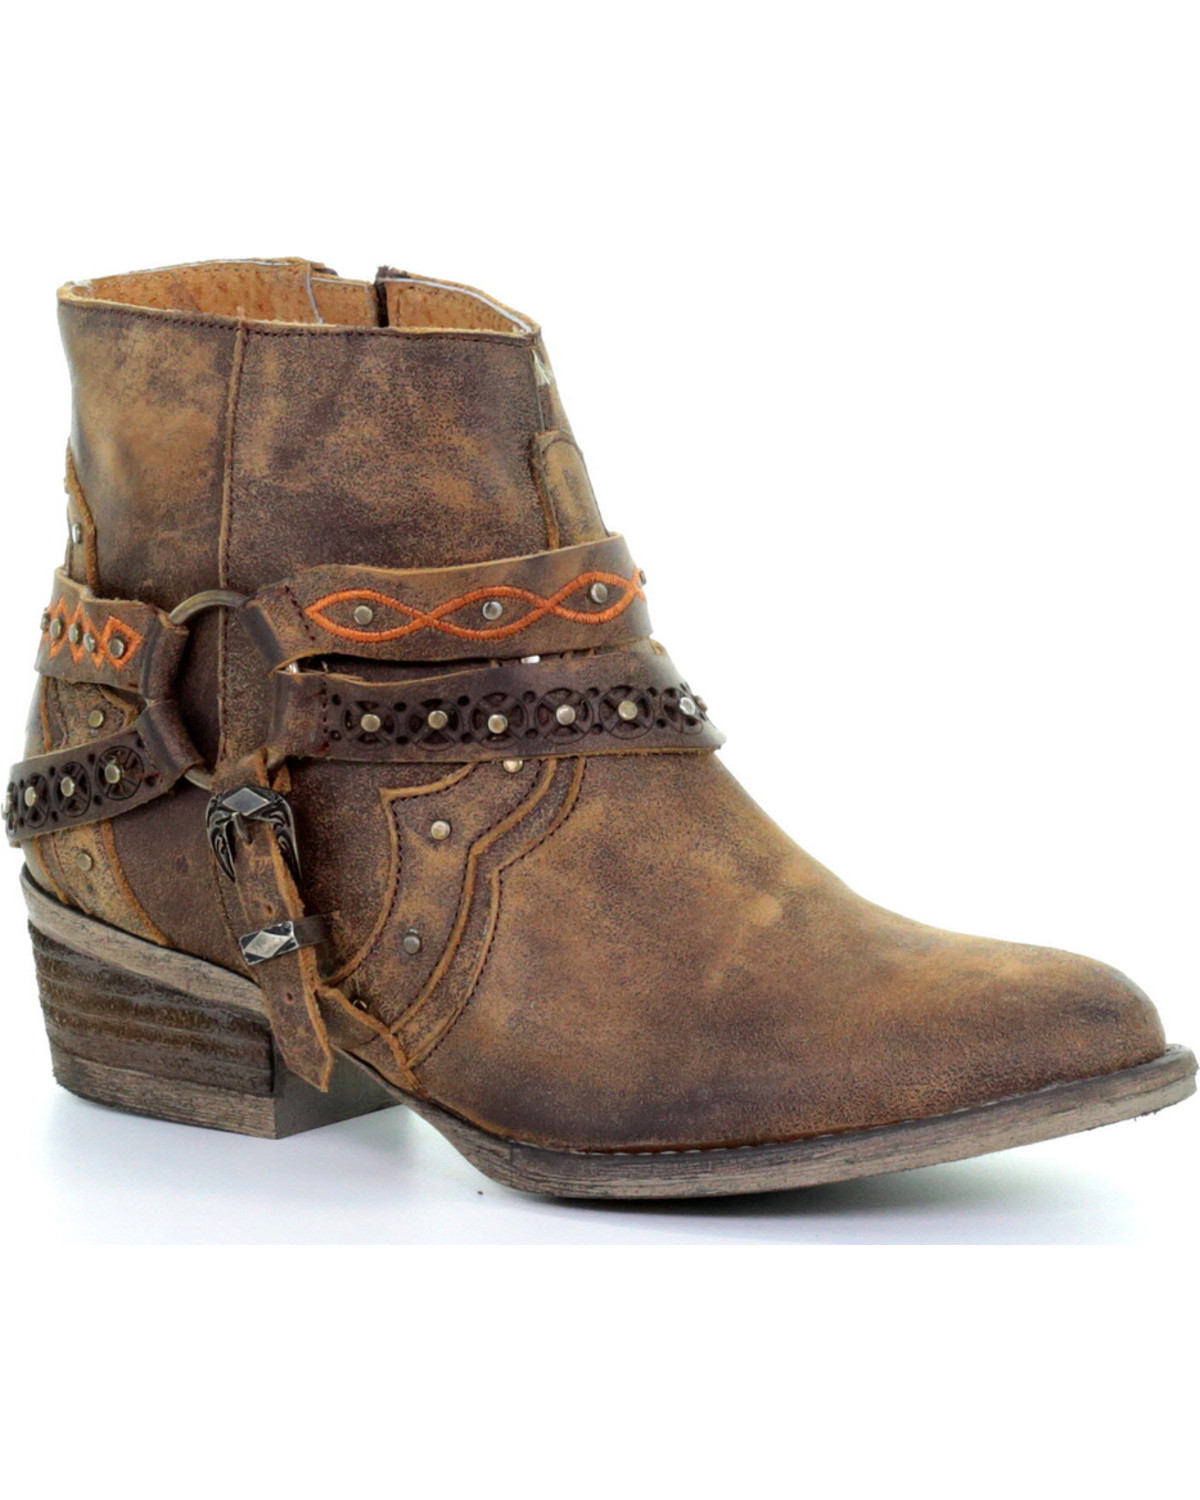 Circle G Women S Diamond Embroidered Cowgirl Boot Square: Circle G Women's Brown Studded Harness Ankle Boots